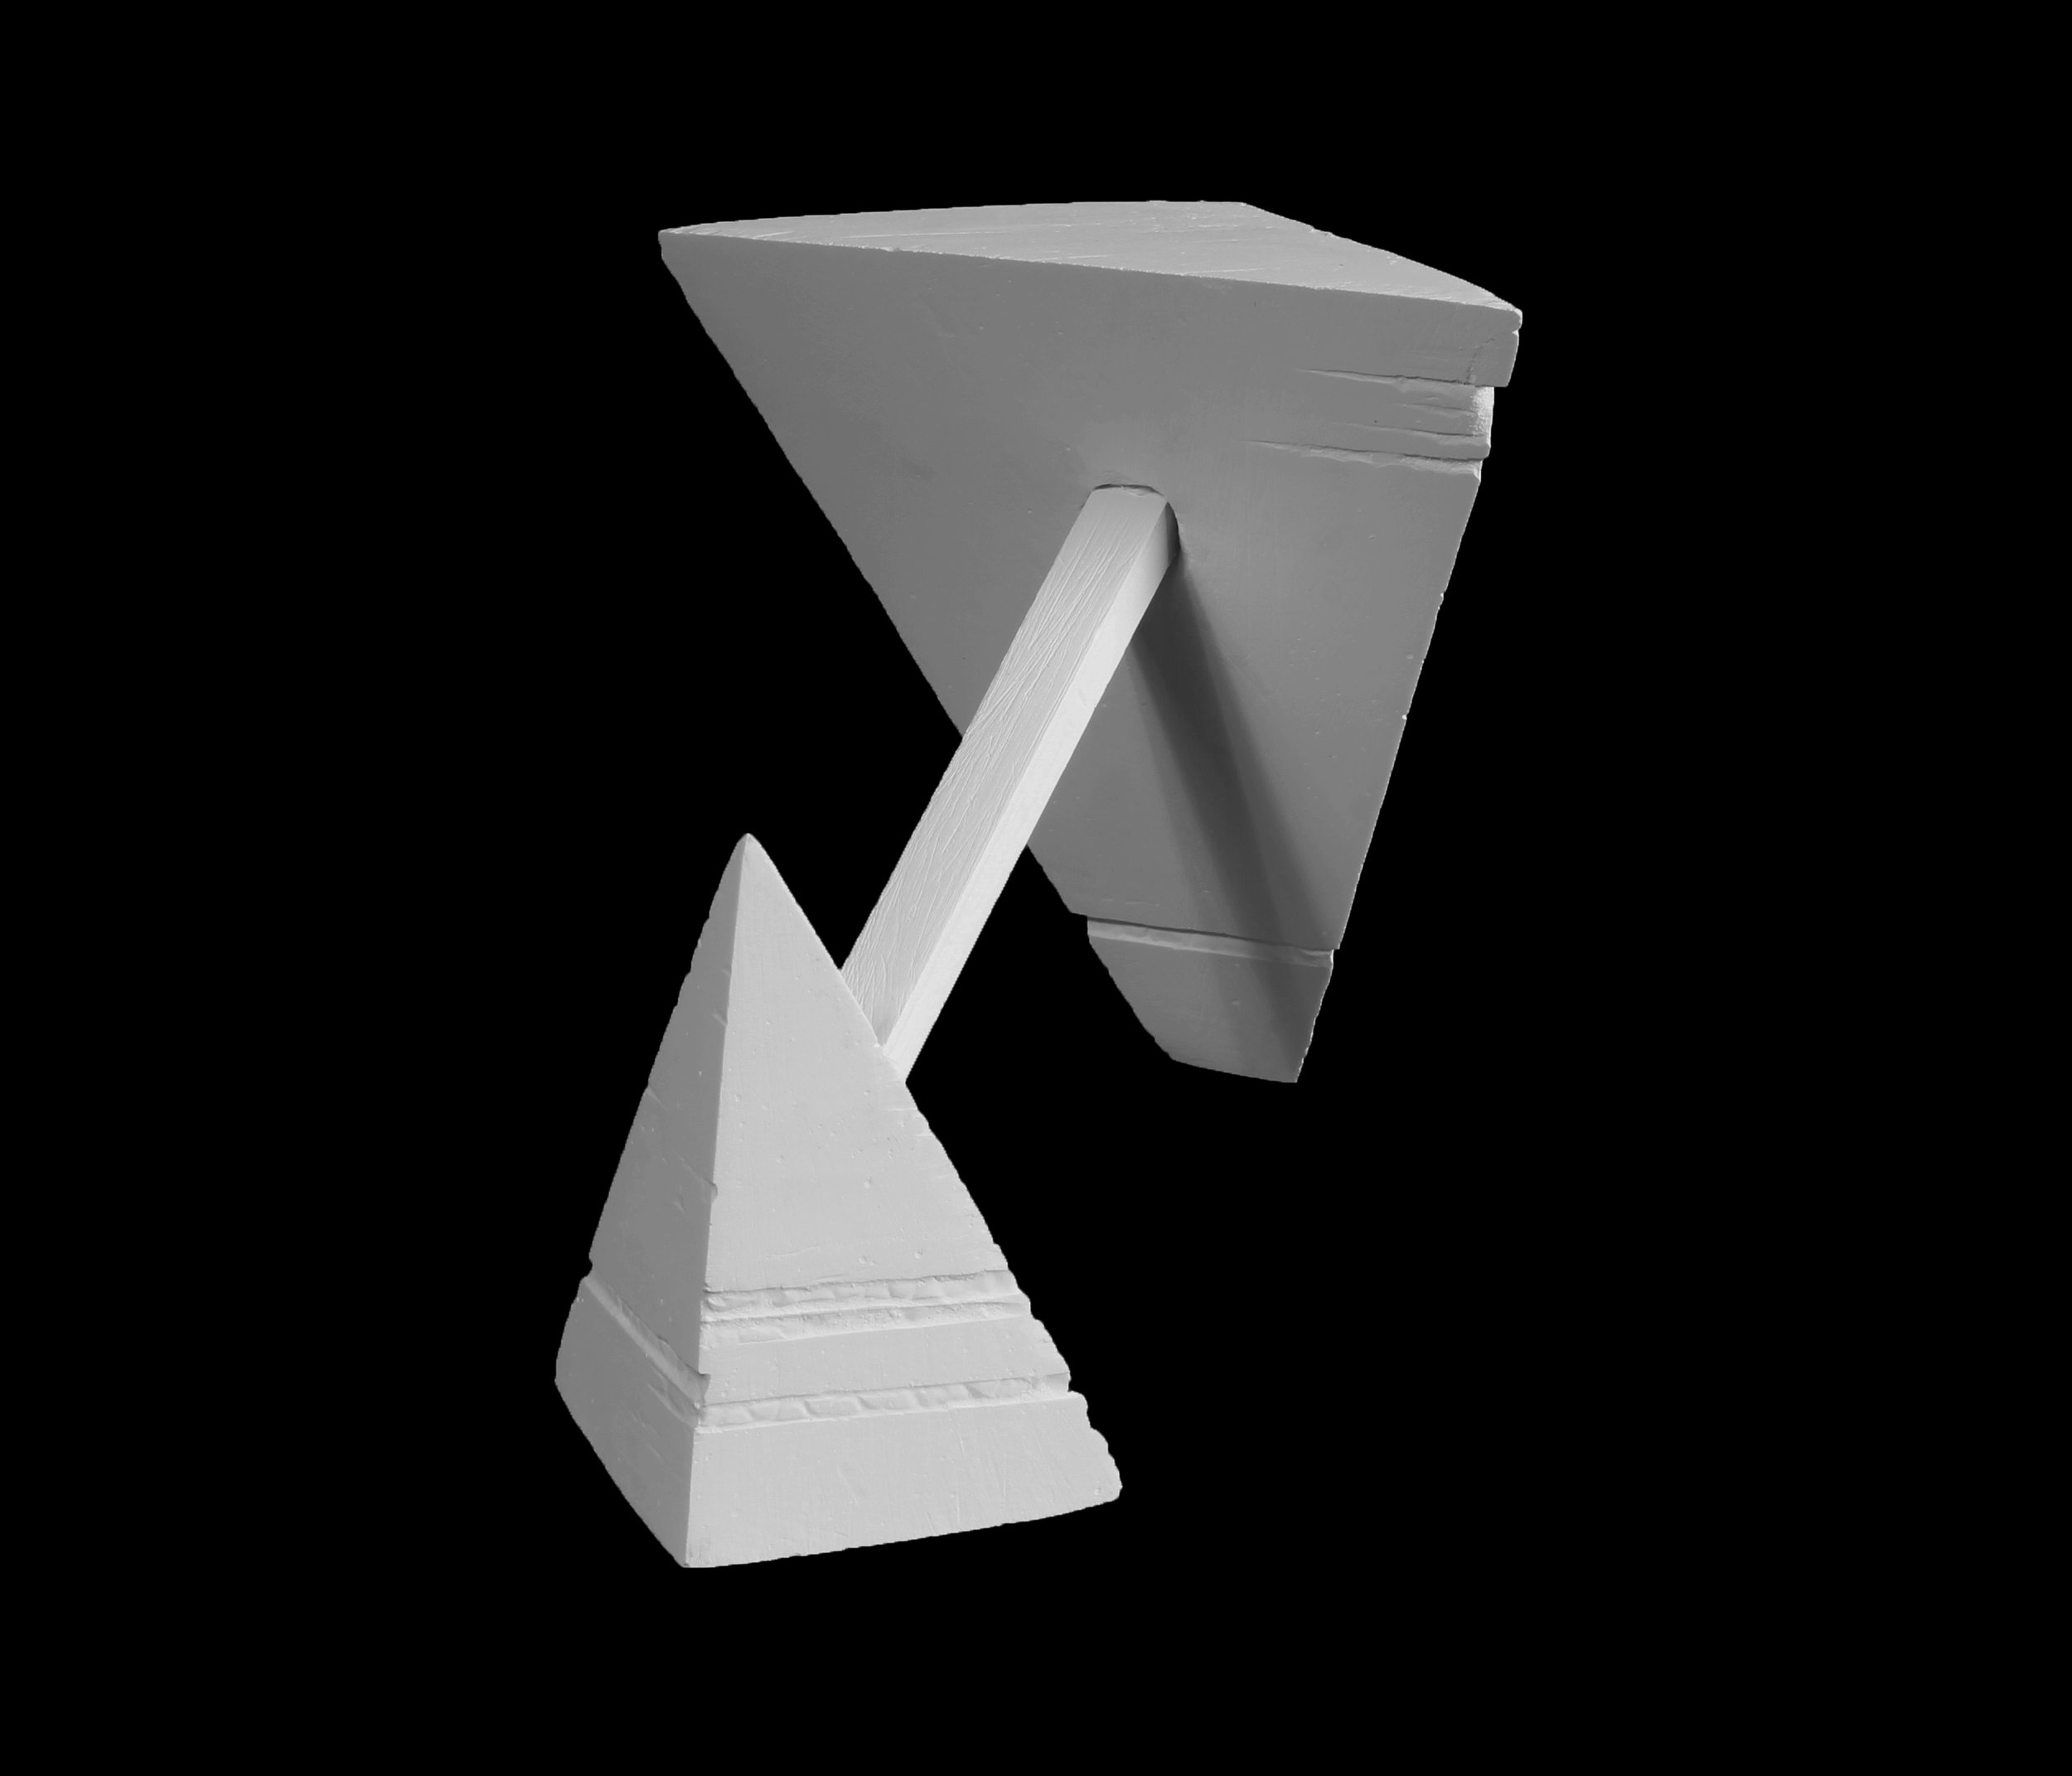 Forms can hold a lot of visual weight and still physically be balanced. The illusion of an unbalanced object creates the facade that the object is defying gravity.